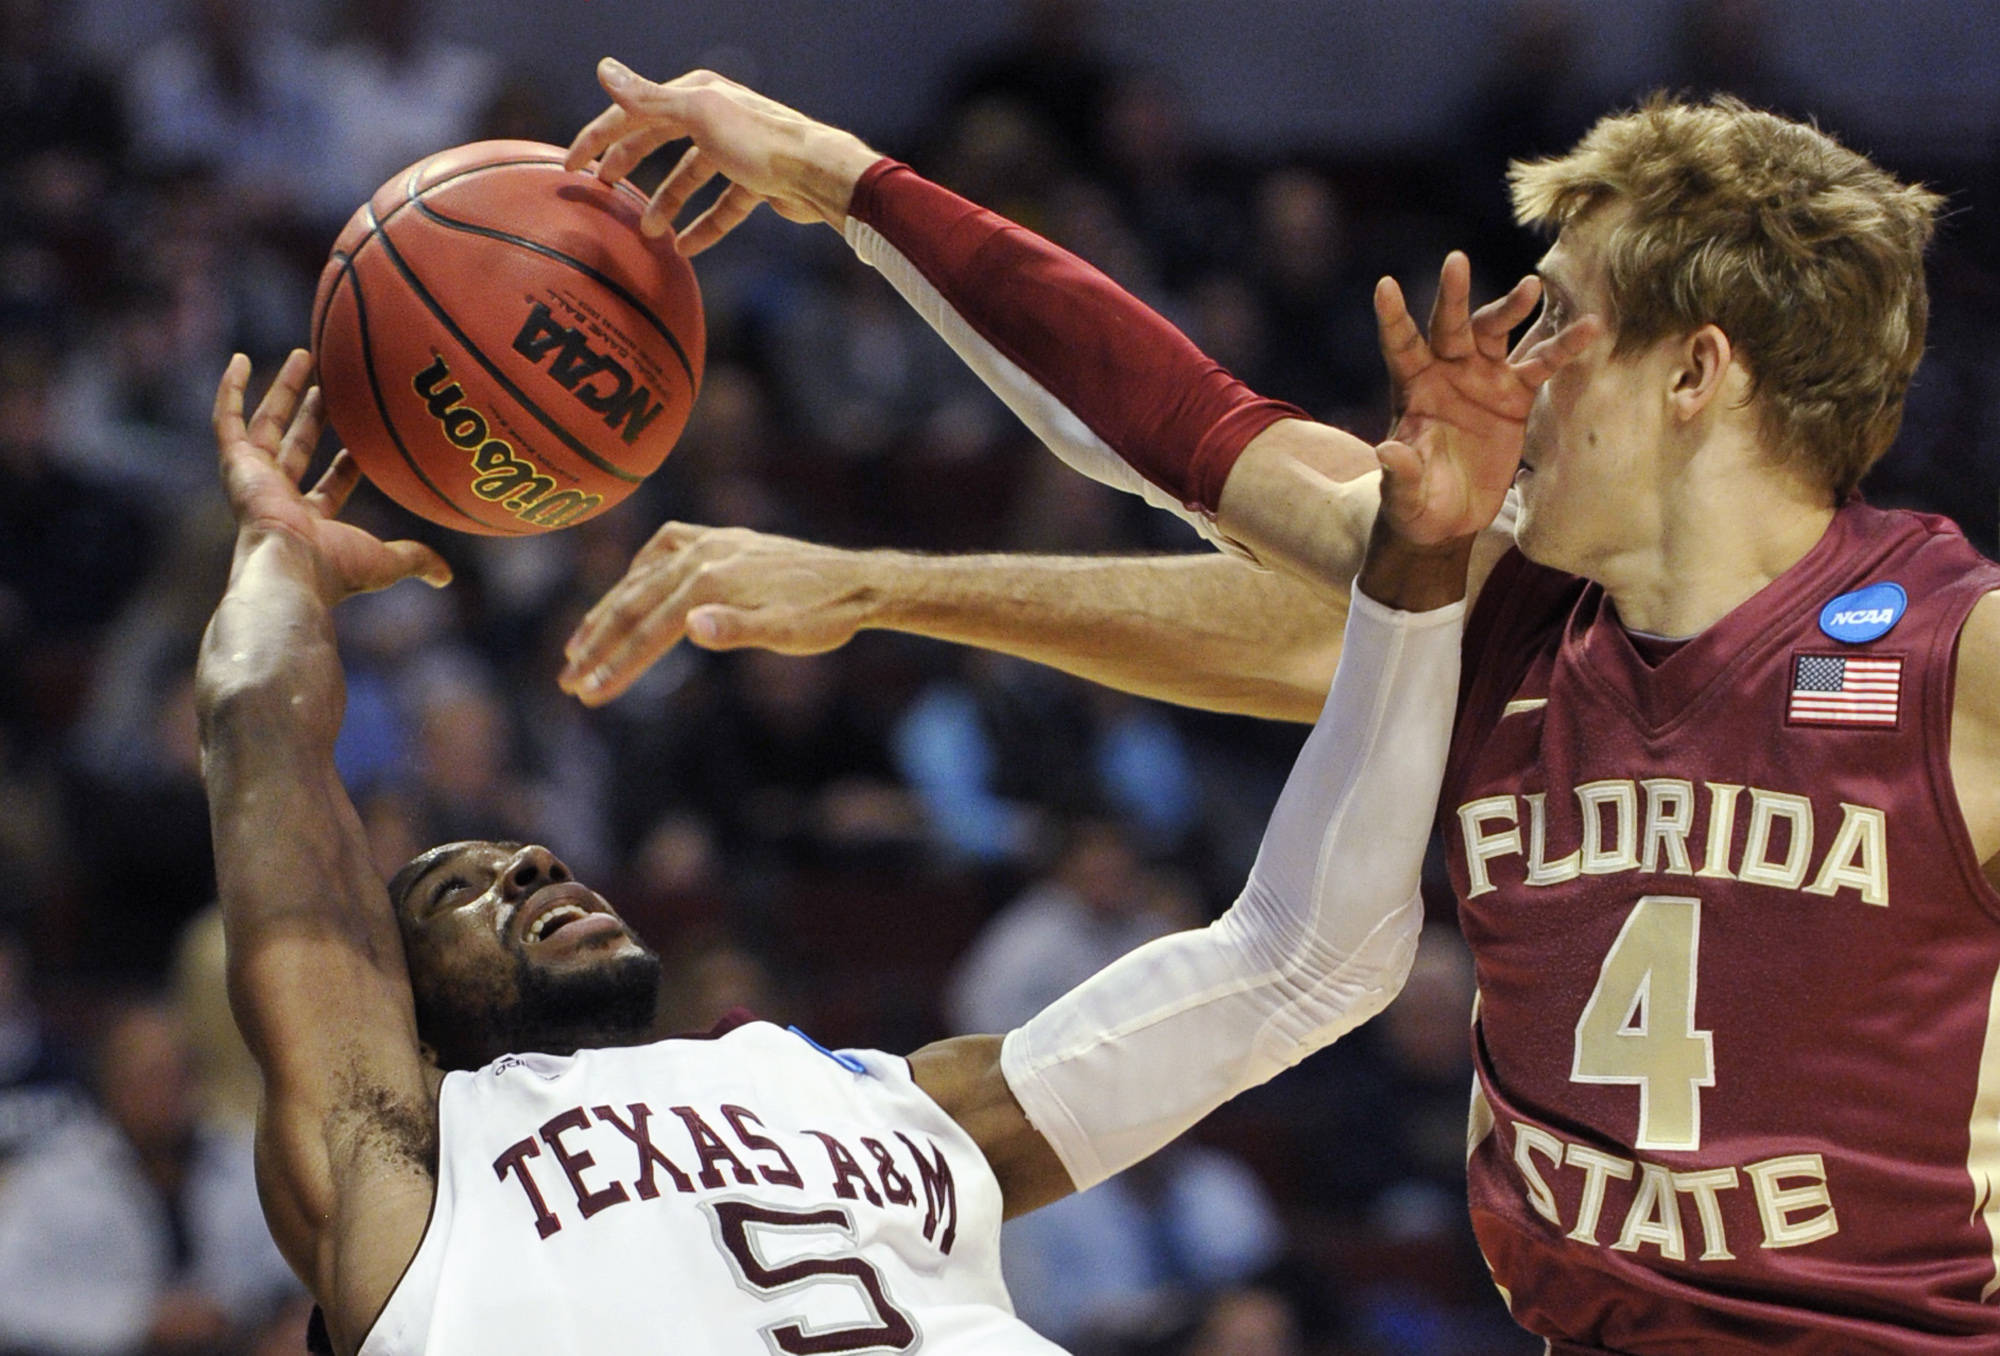 Texas A&M's Dash Harris and Florida State's Deividas Dulkys, of Lithuania, fight for a loose ball in the first half. (AP Photo/Jim Prisching)